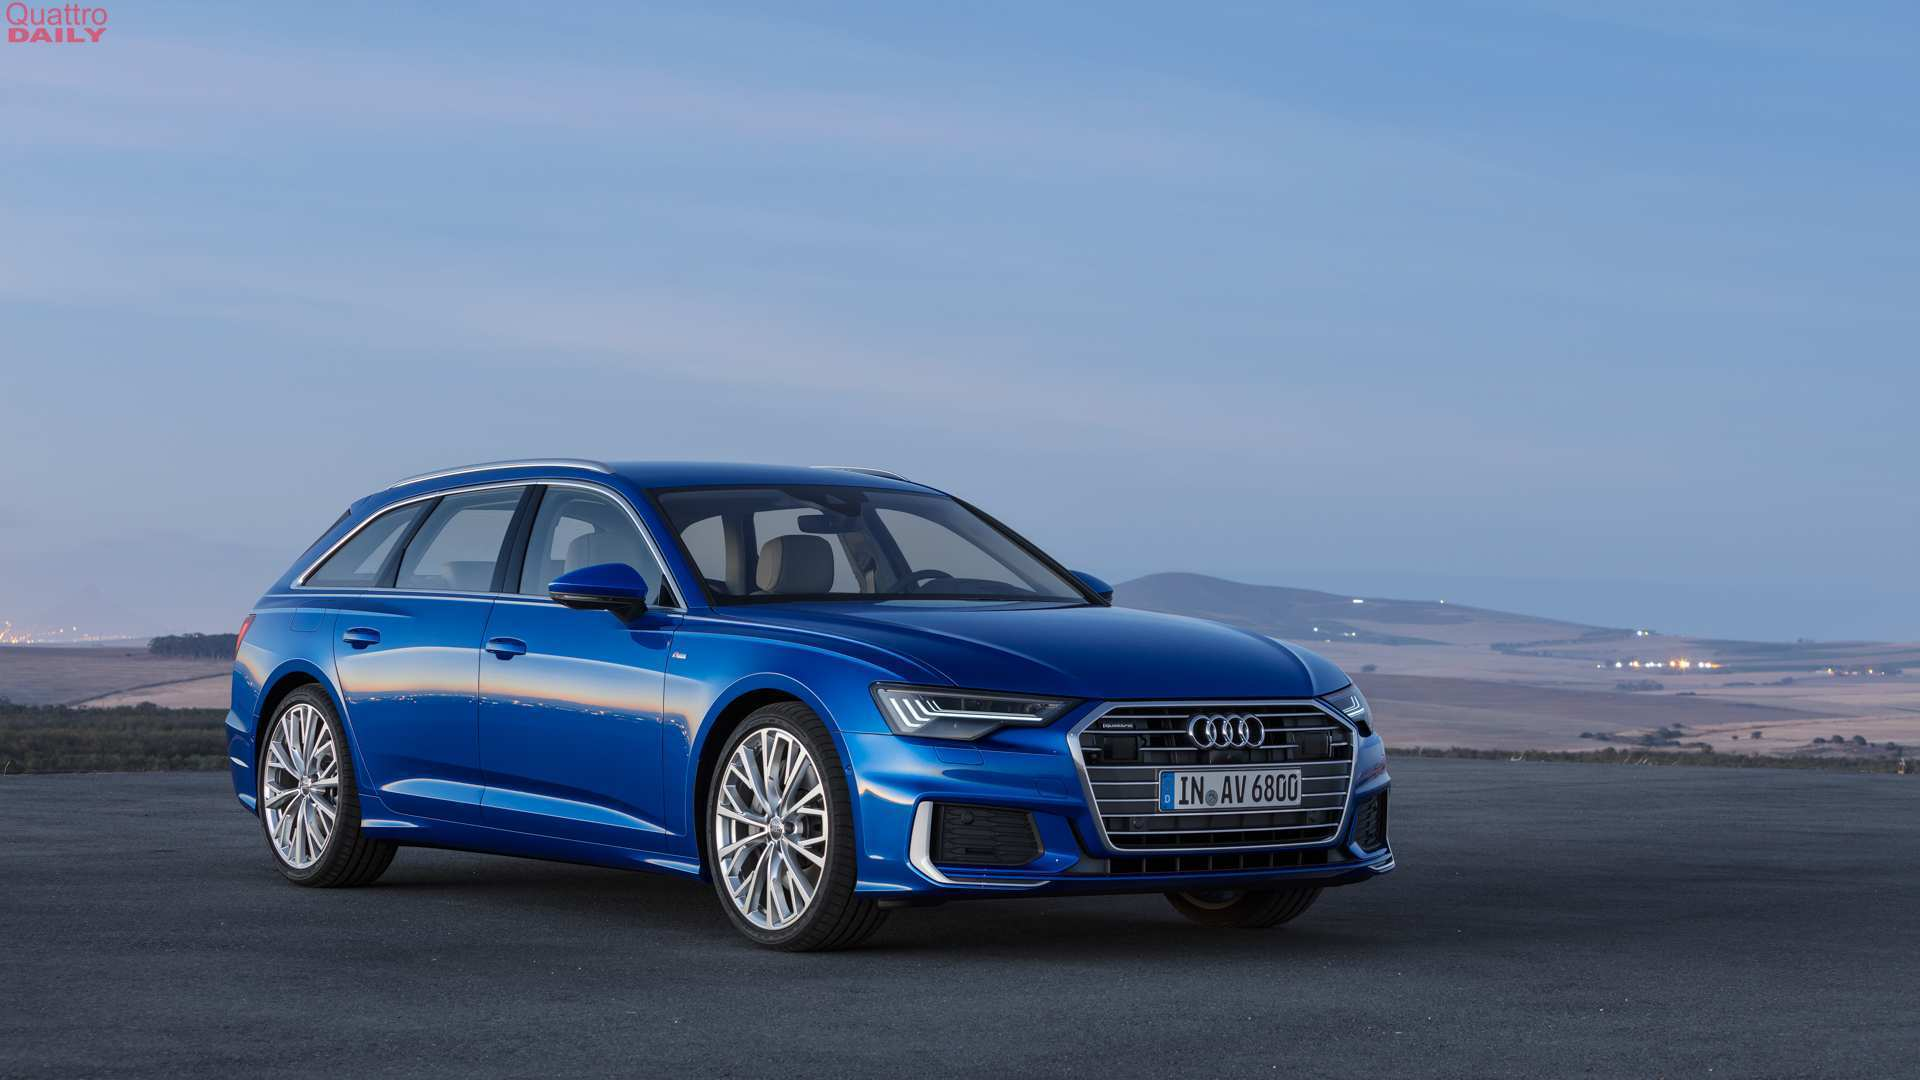 69 Gallery of 2019 Audi A6 Release Date Usa Photos for 2019 Audi A6 Release Date Usa